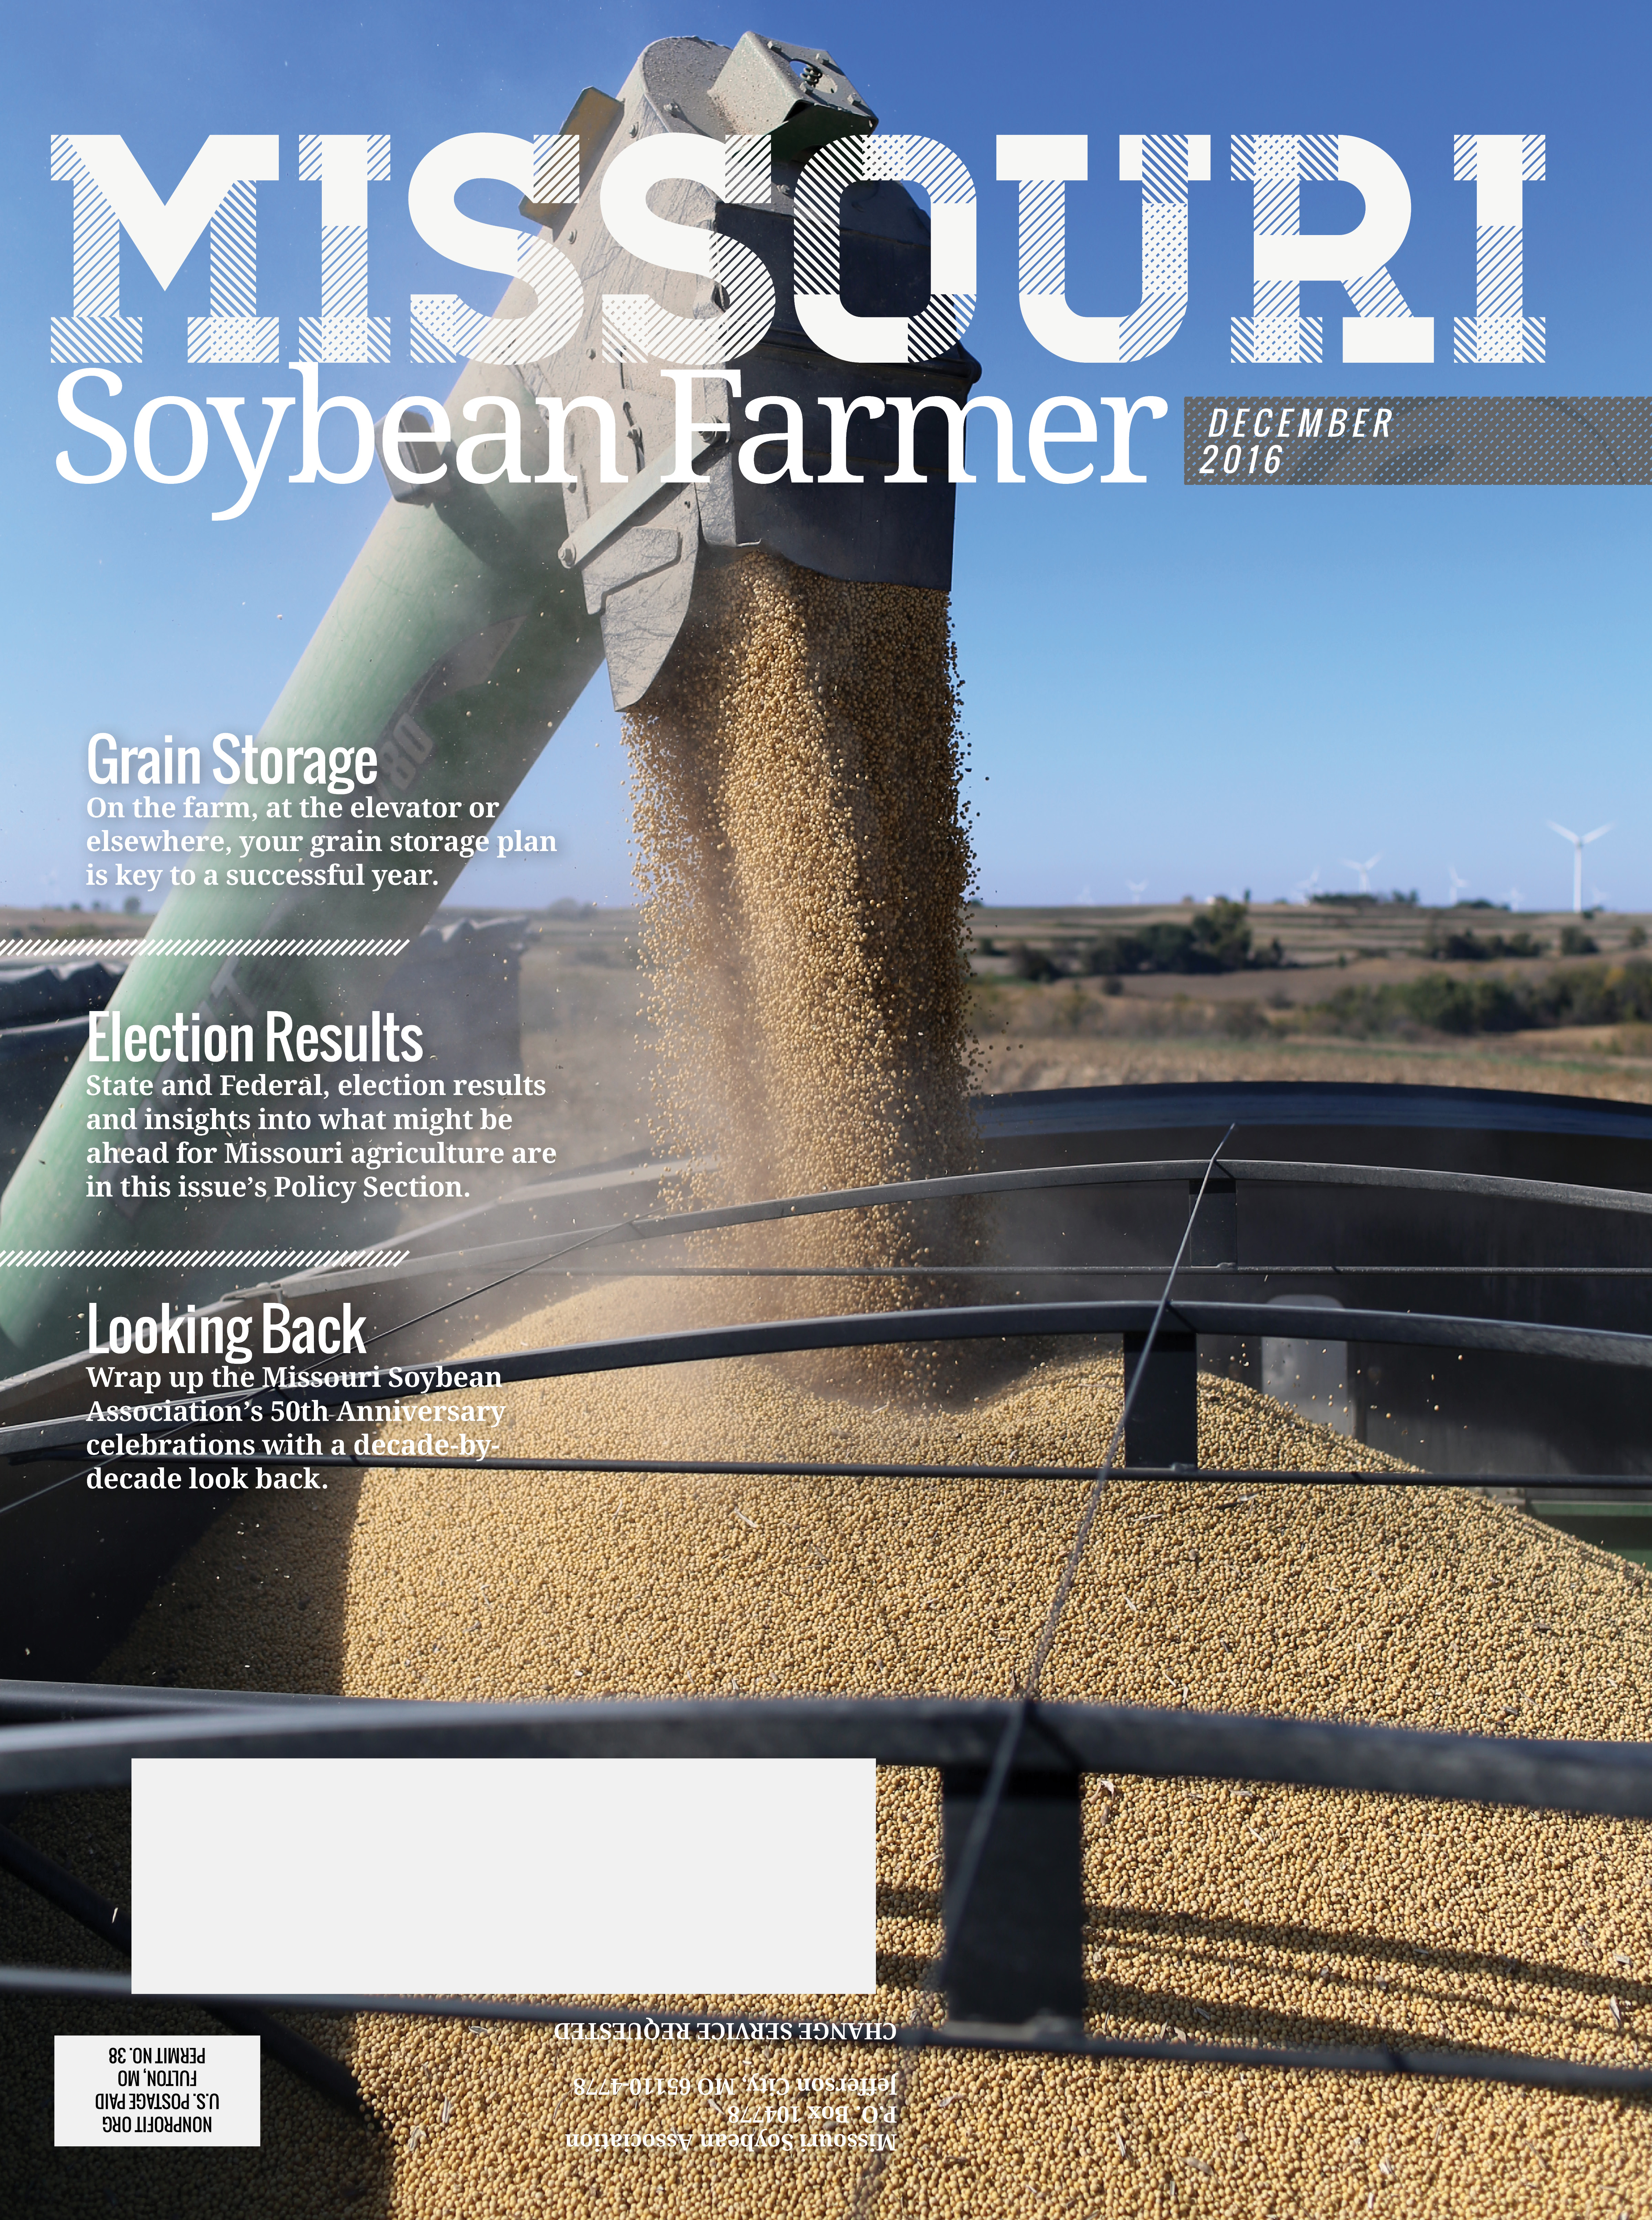 Online Now: December 2016 Issue of Missouri Soybean Farmer